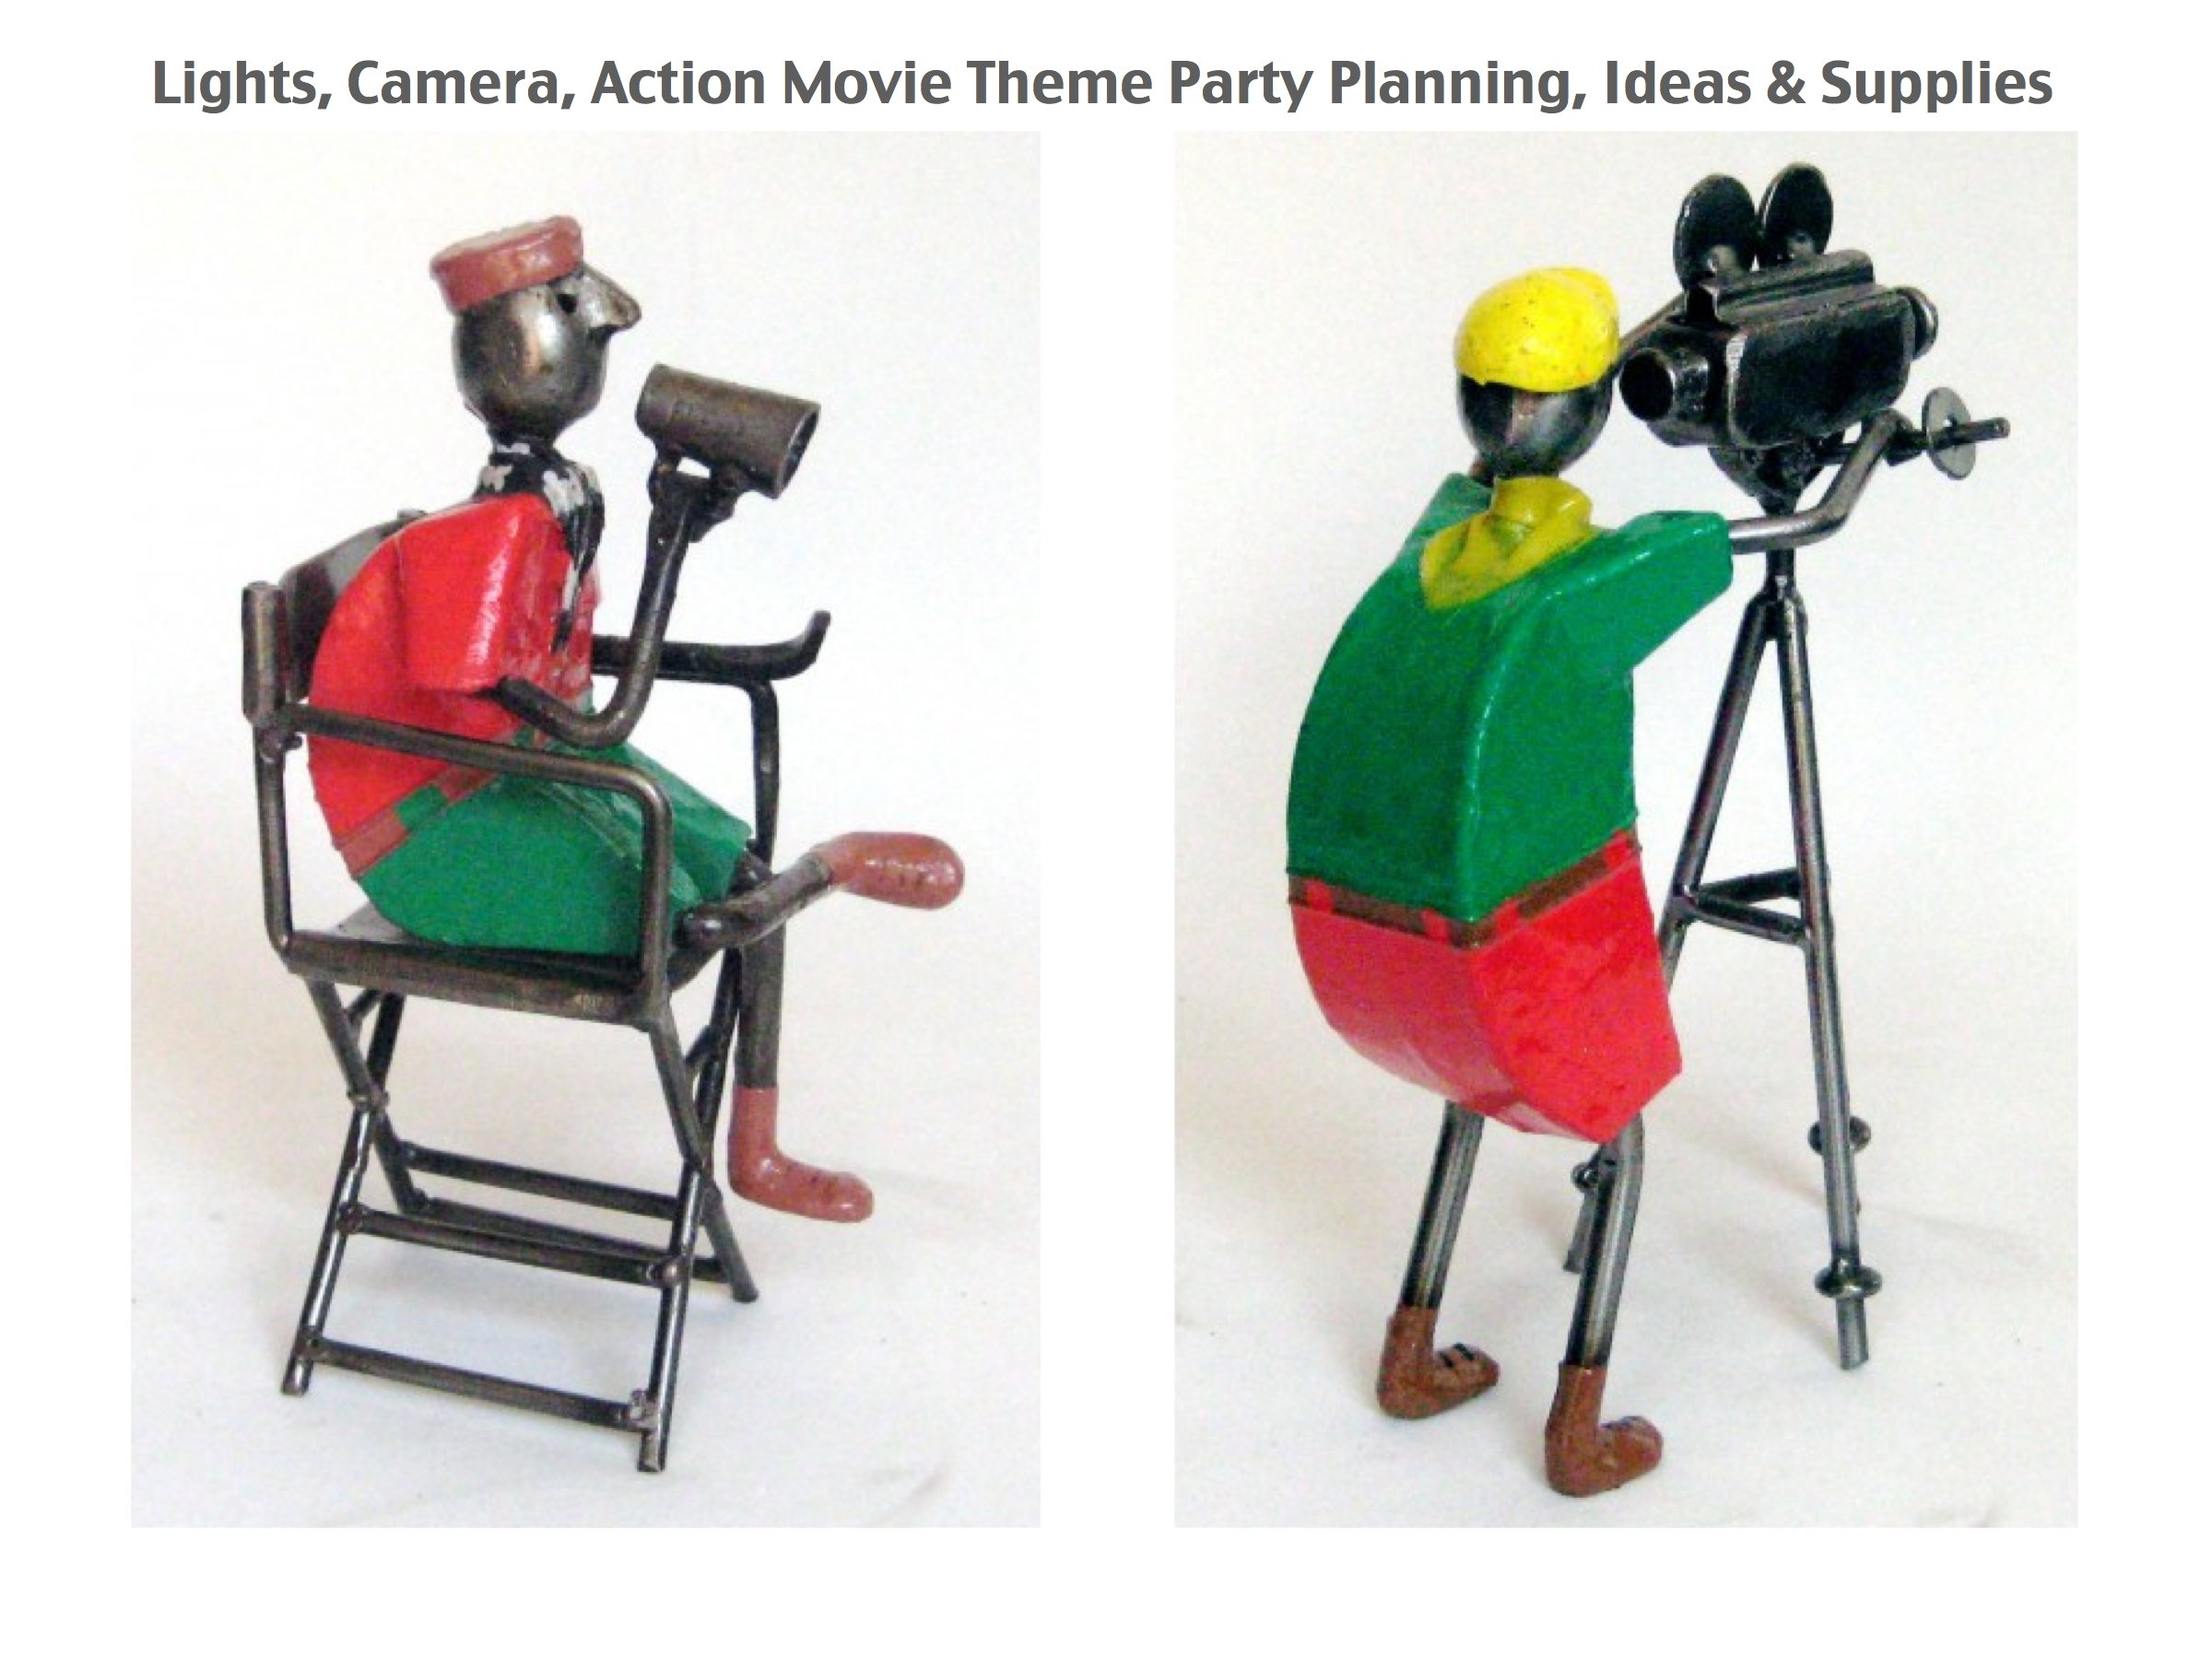 Lights, Camera, Action Movie Theme Party Planning, Ideas & Supplies